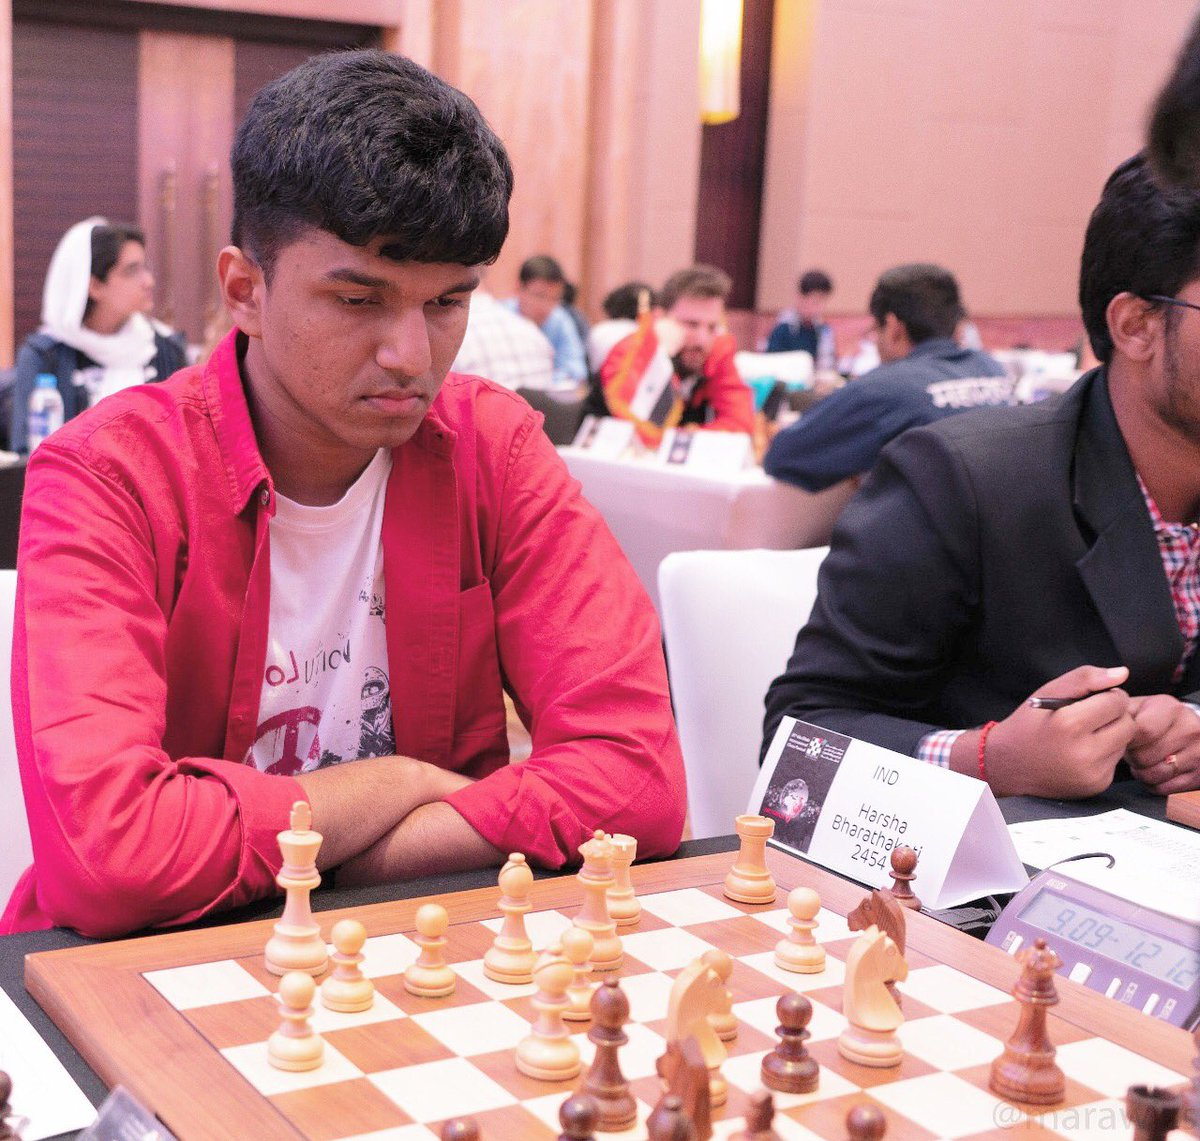 Harsha Bharathakoti at the Abu Dhabi Masters 2018